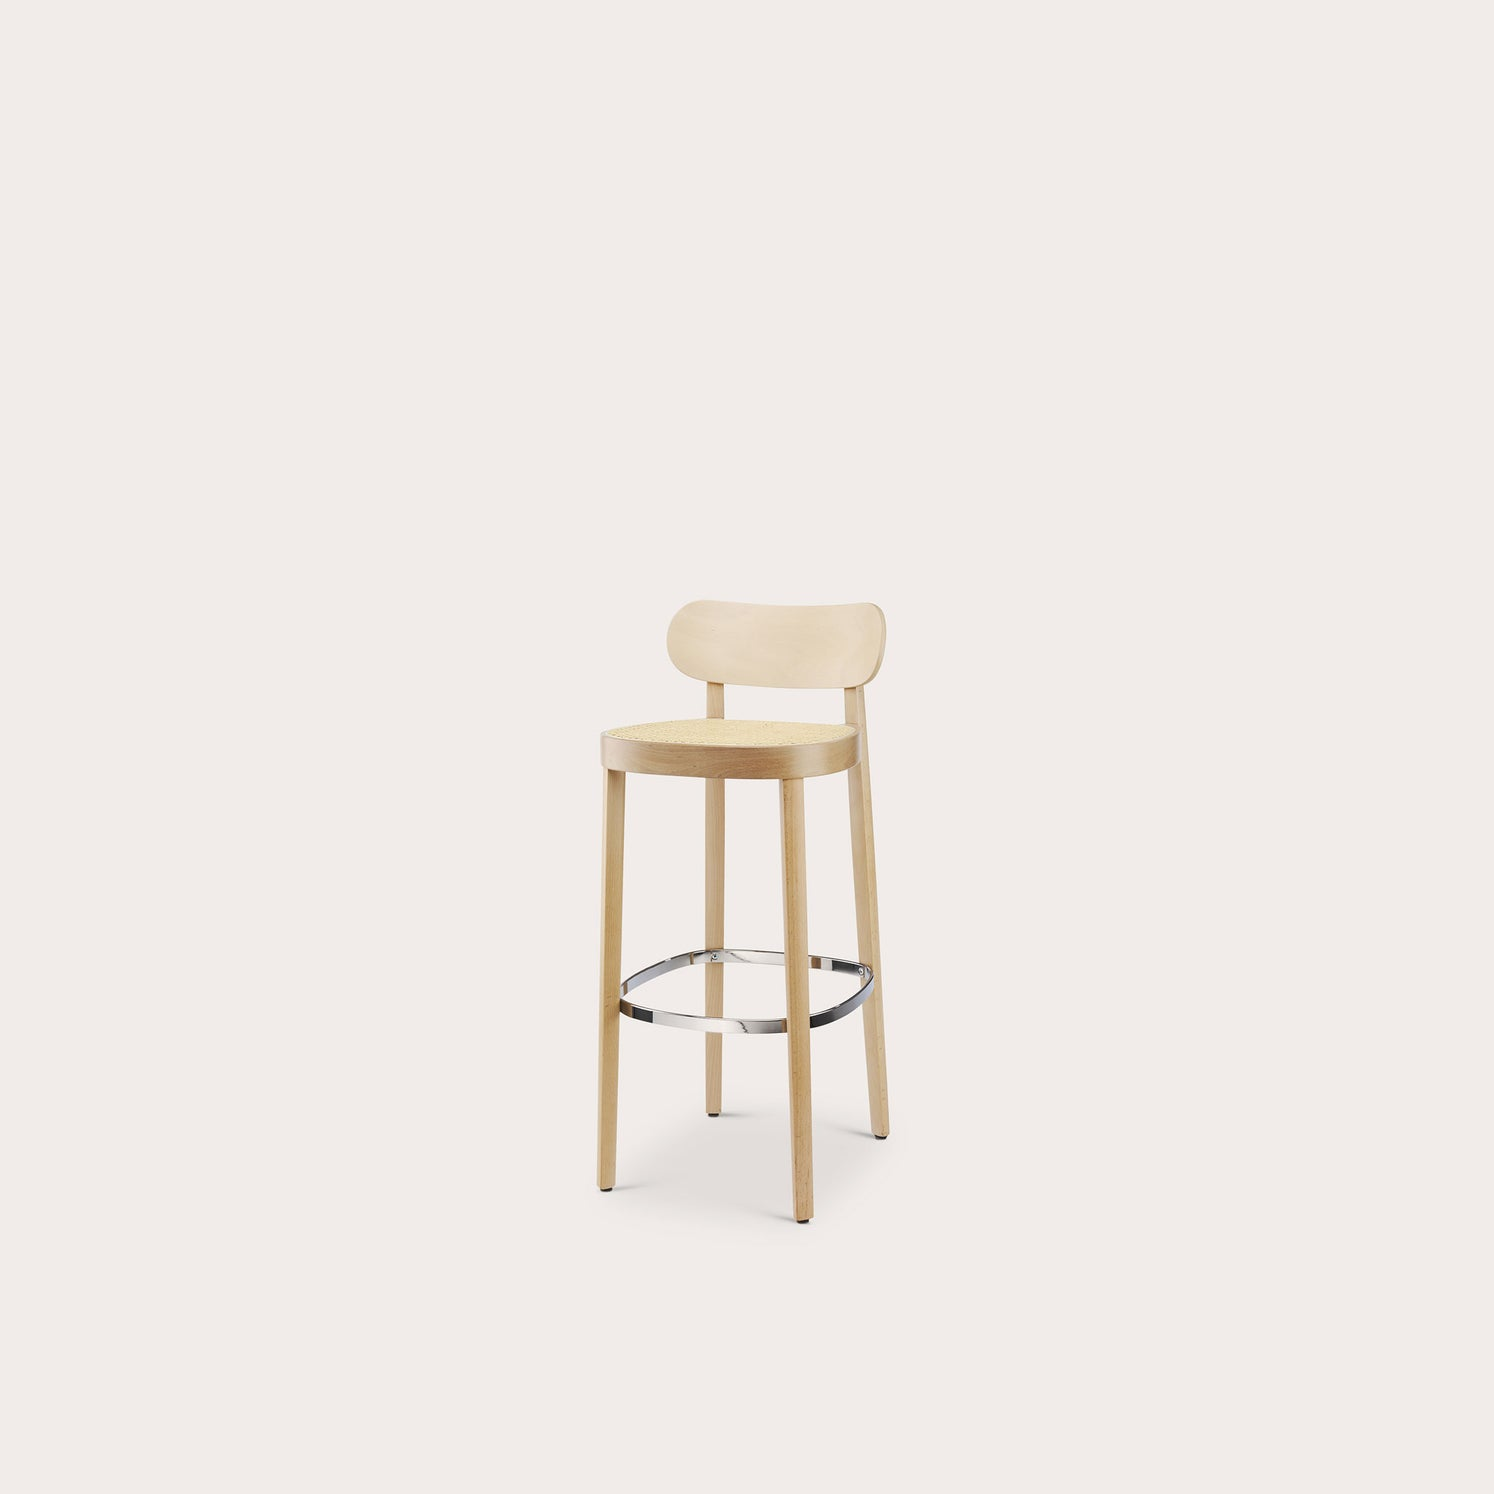 118 Counter Height Stool Seating Sebastian Herkner Designer Furniture Sku: 015-120-10001